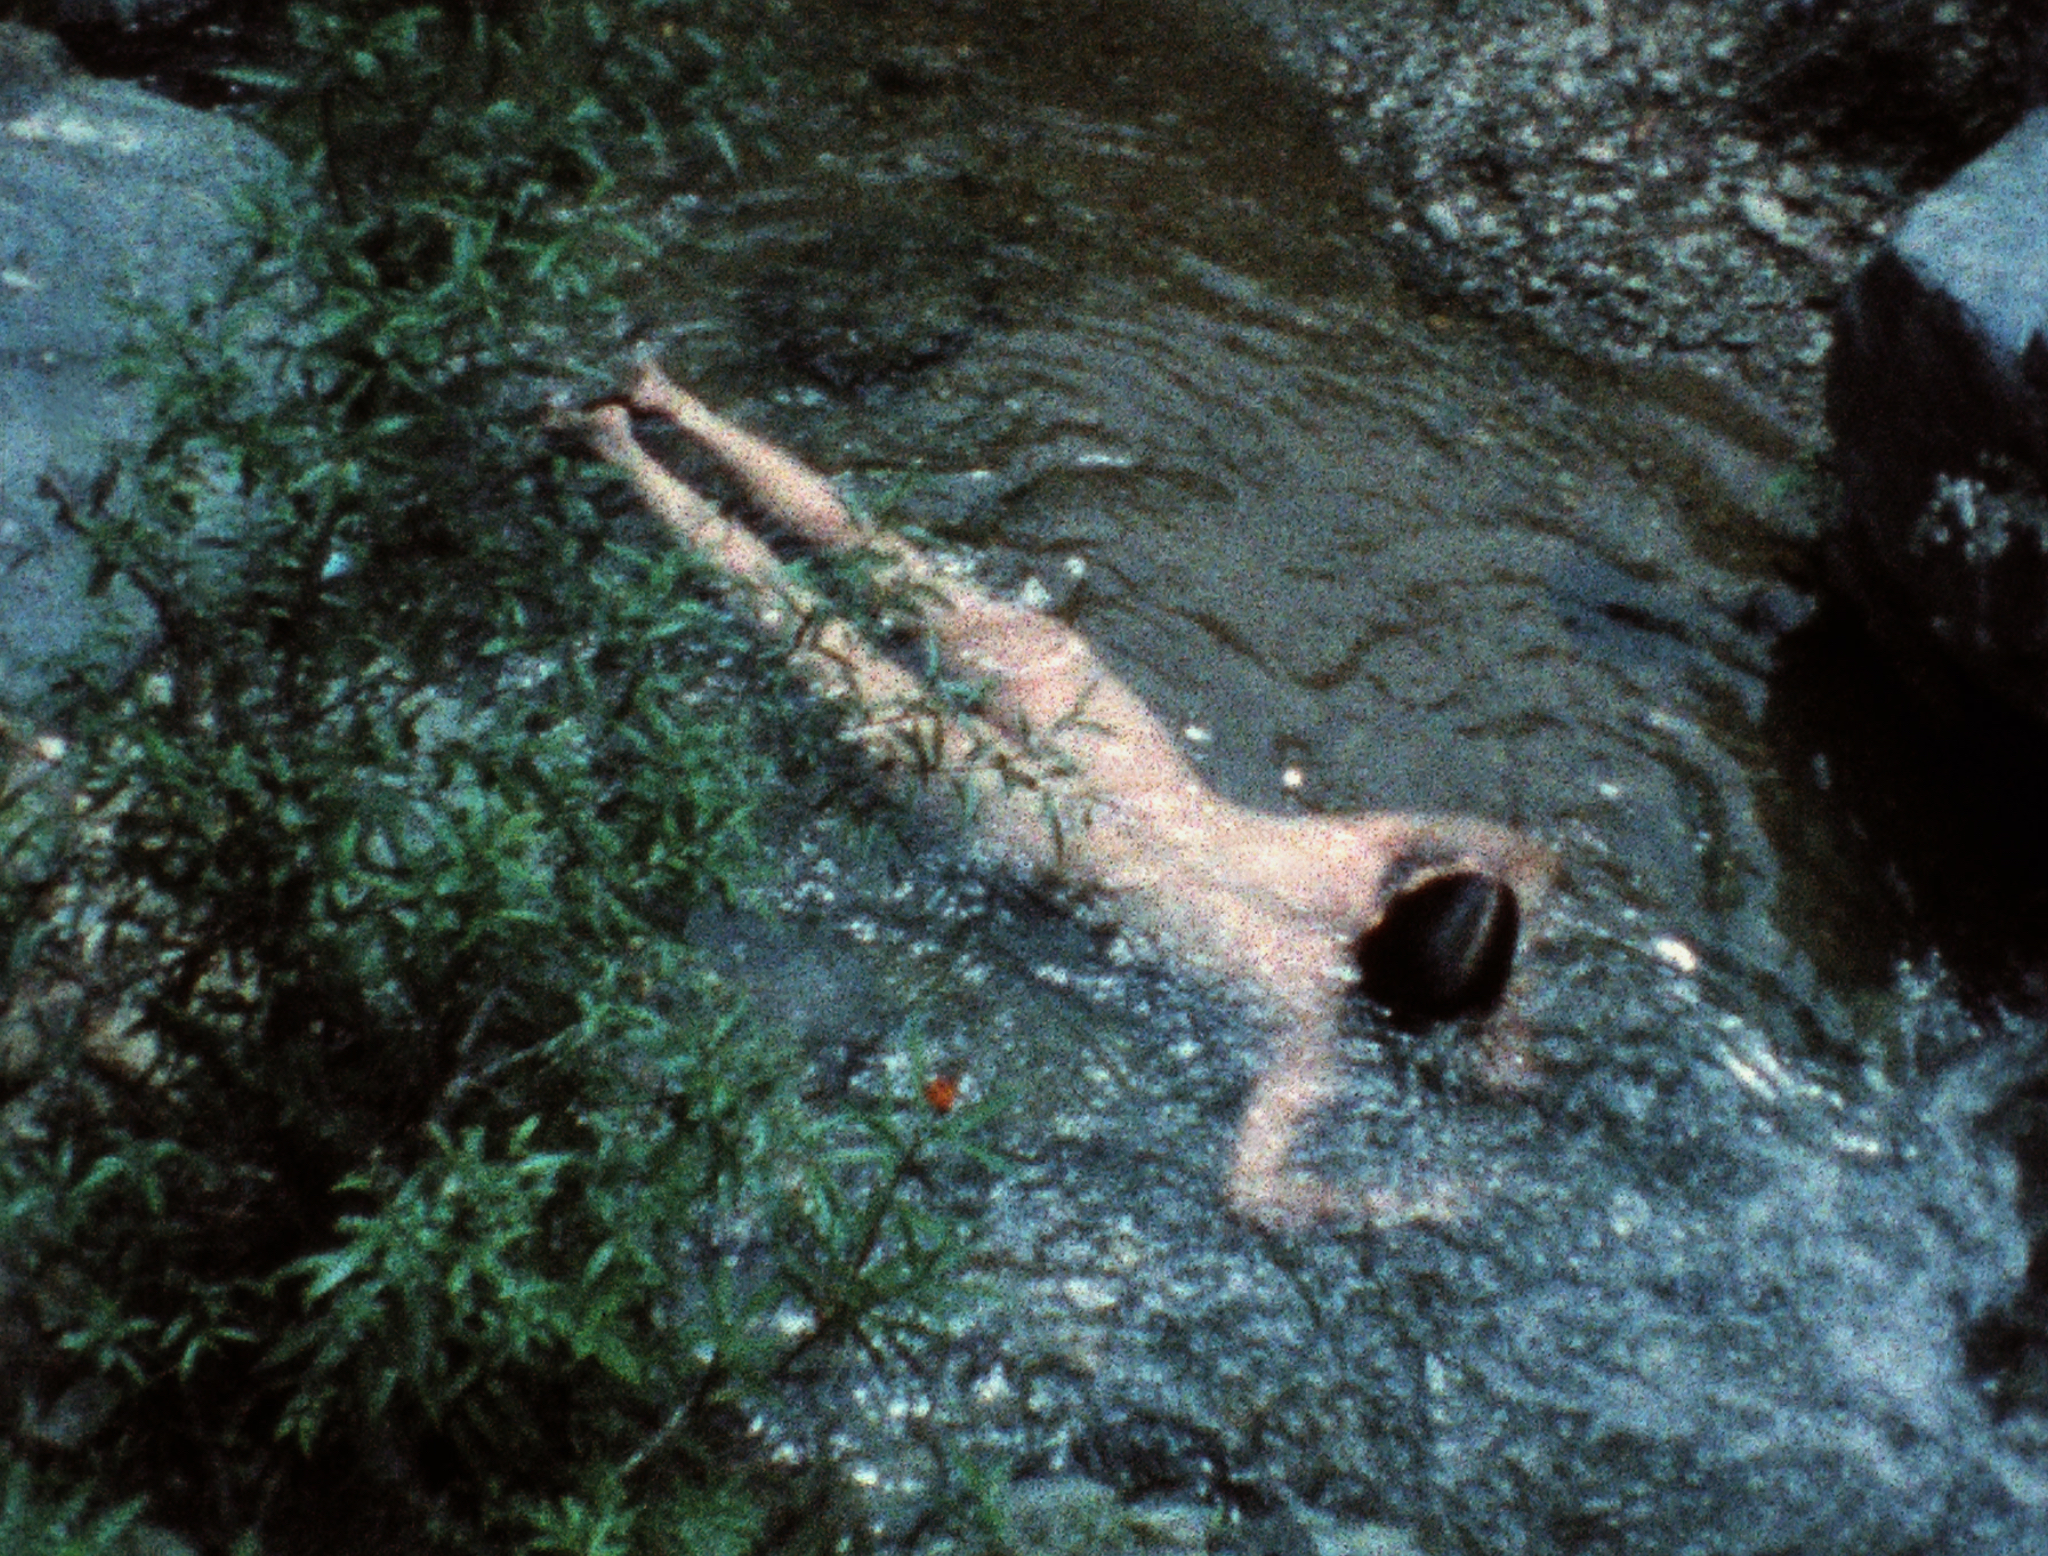 Ana Mendieta  Creek , 1974, Still from super-8mm film transferred to high-definition digital media, color, silent. Running time:3:11 minutes. © The Estate of Ana Mendieta Collection, LLC. Courtesy Galerie Lelong & Co.